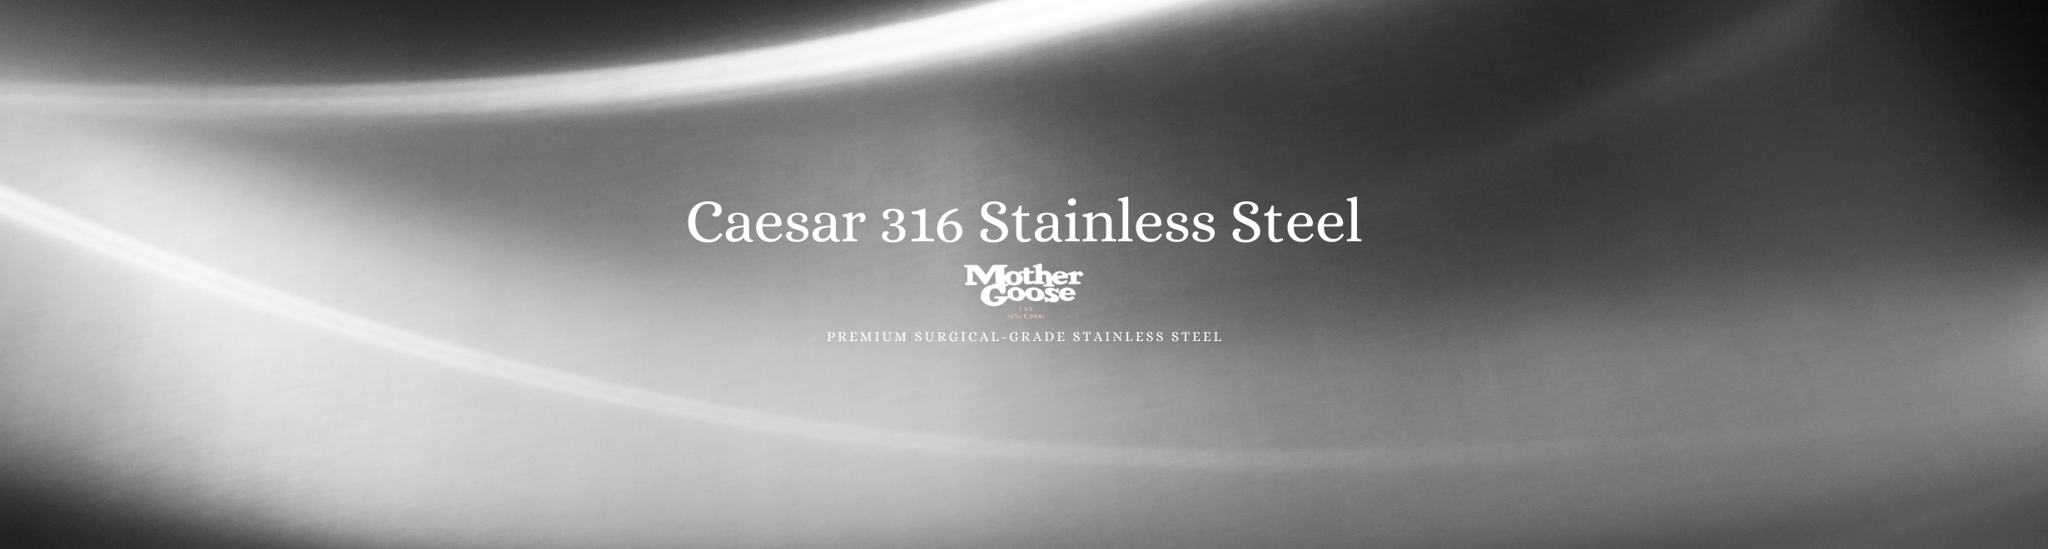 CAESAR 316 STAINLESS STEEL